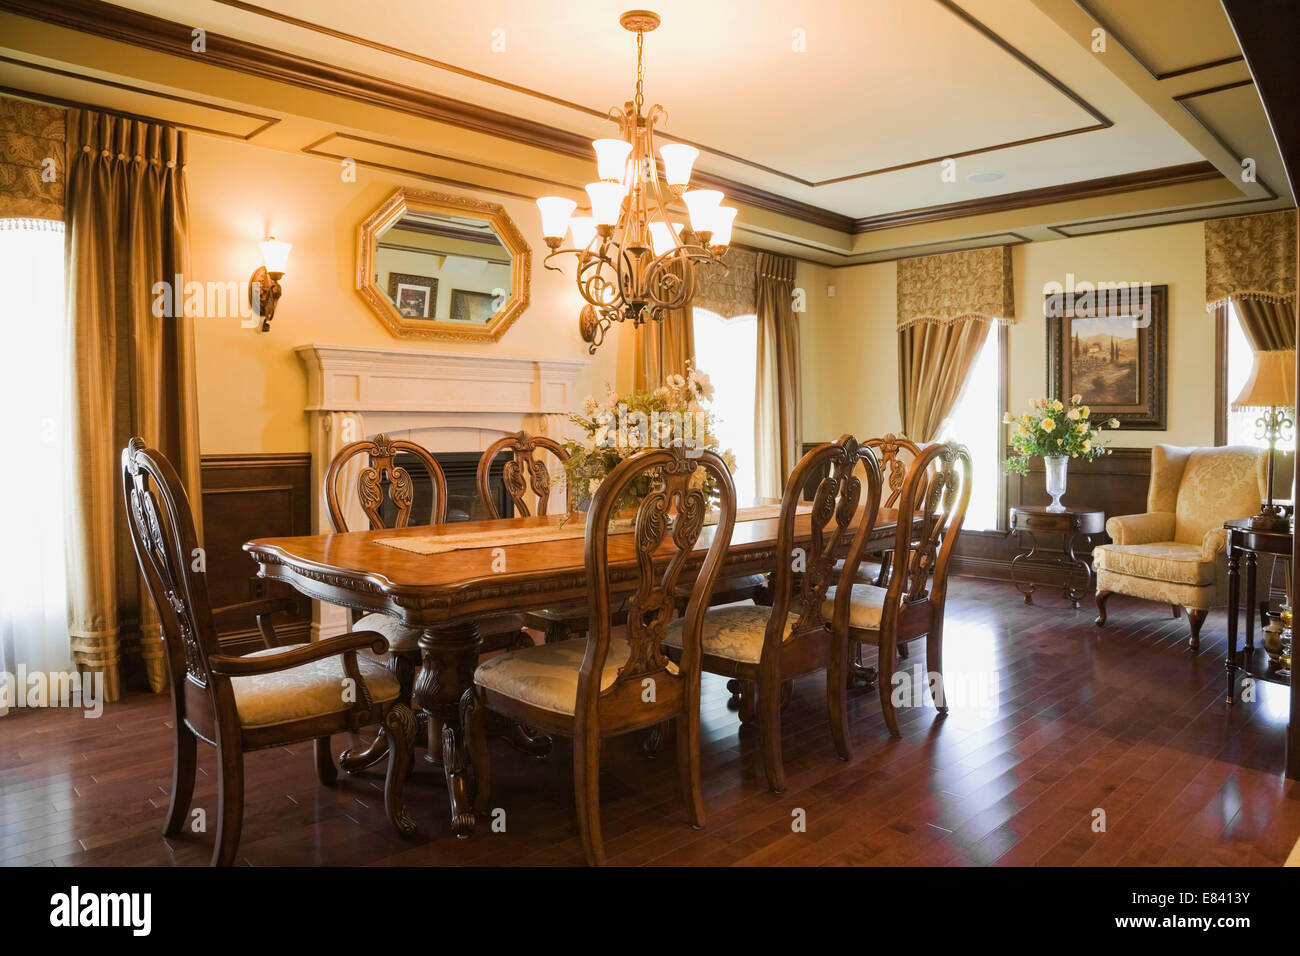 Luxurious old fashioned dining room stock photos